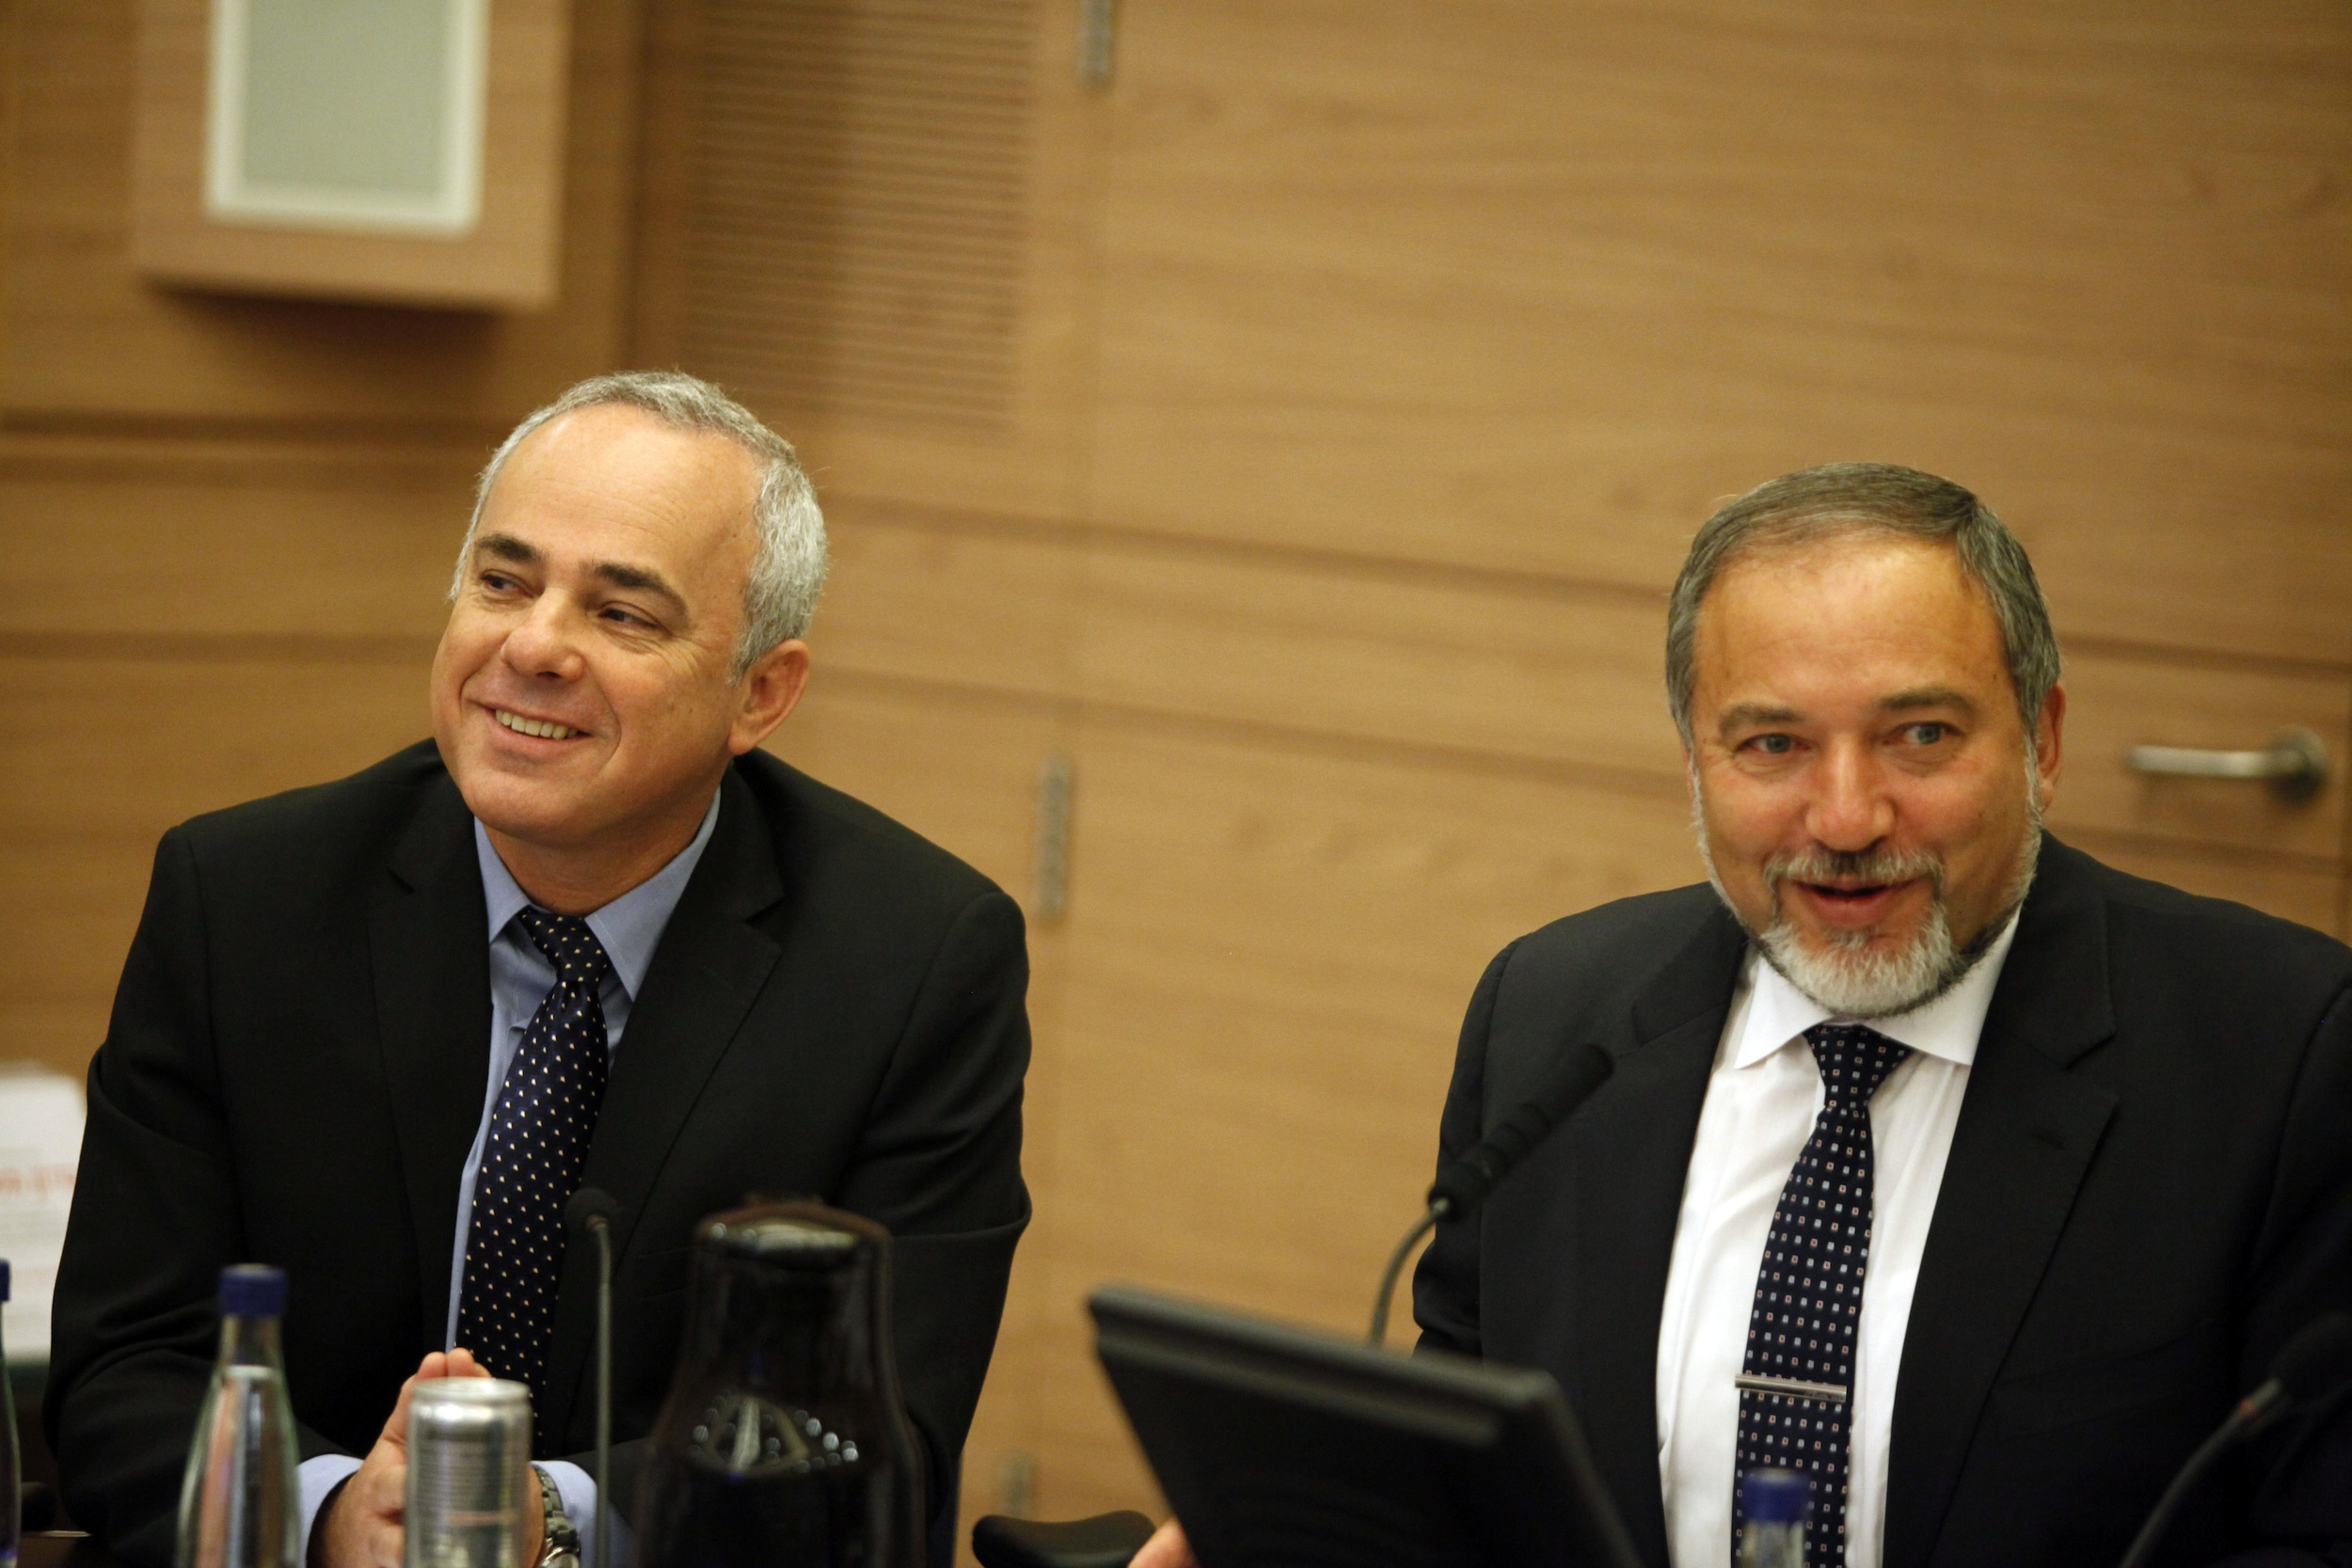 """Yuval Steinitz (left), Israeli Minister of International Relations and Strategic Affairs, and Avigdor Lieberman at a Foreign Affairs and Defence committee meeting in the Israeli Parliament in Jerusalem on May 20, 2013. Steinitz on Monday said There is a """"real possibility"""" that Syrian President Bashar al-Assad """"could survive Syria's civil war and even prevail in it."""" Credit: Flash90."""